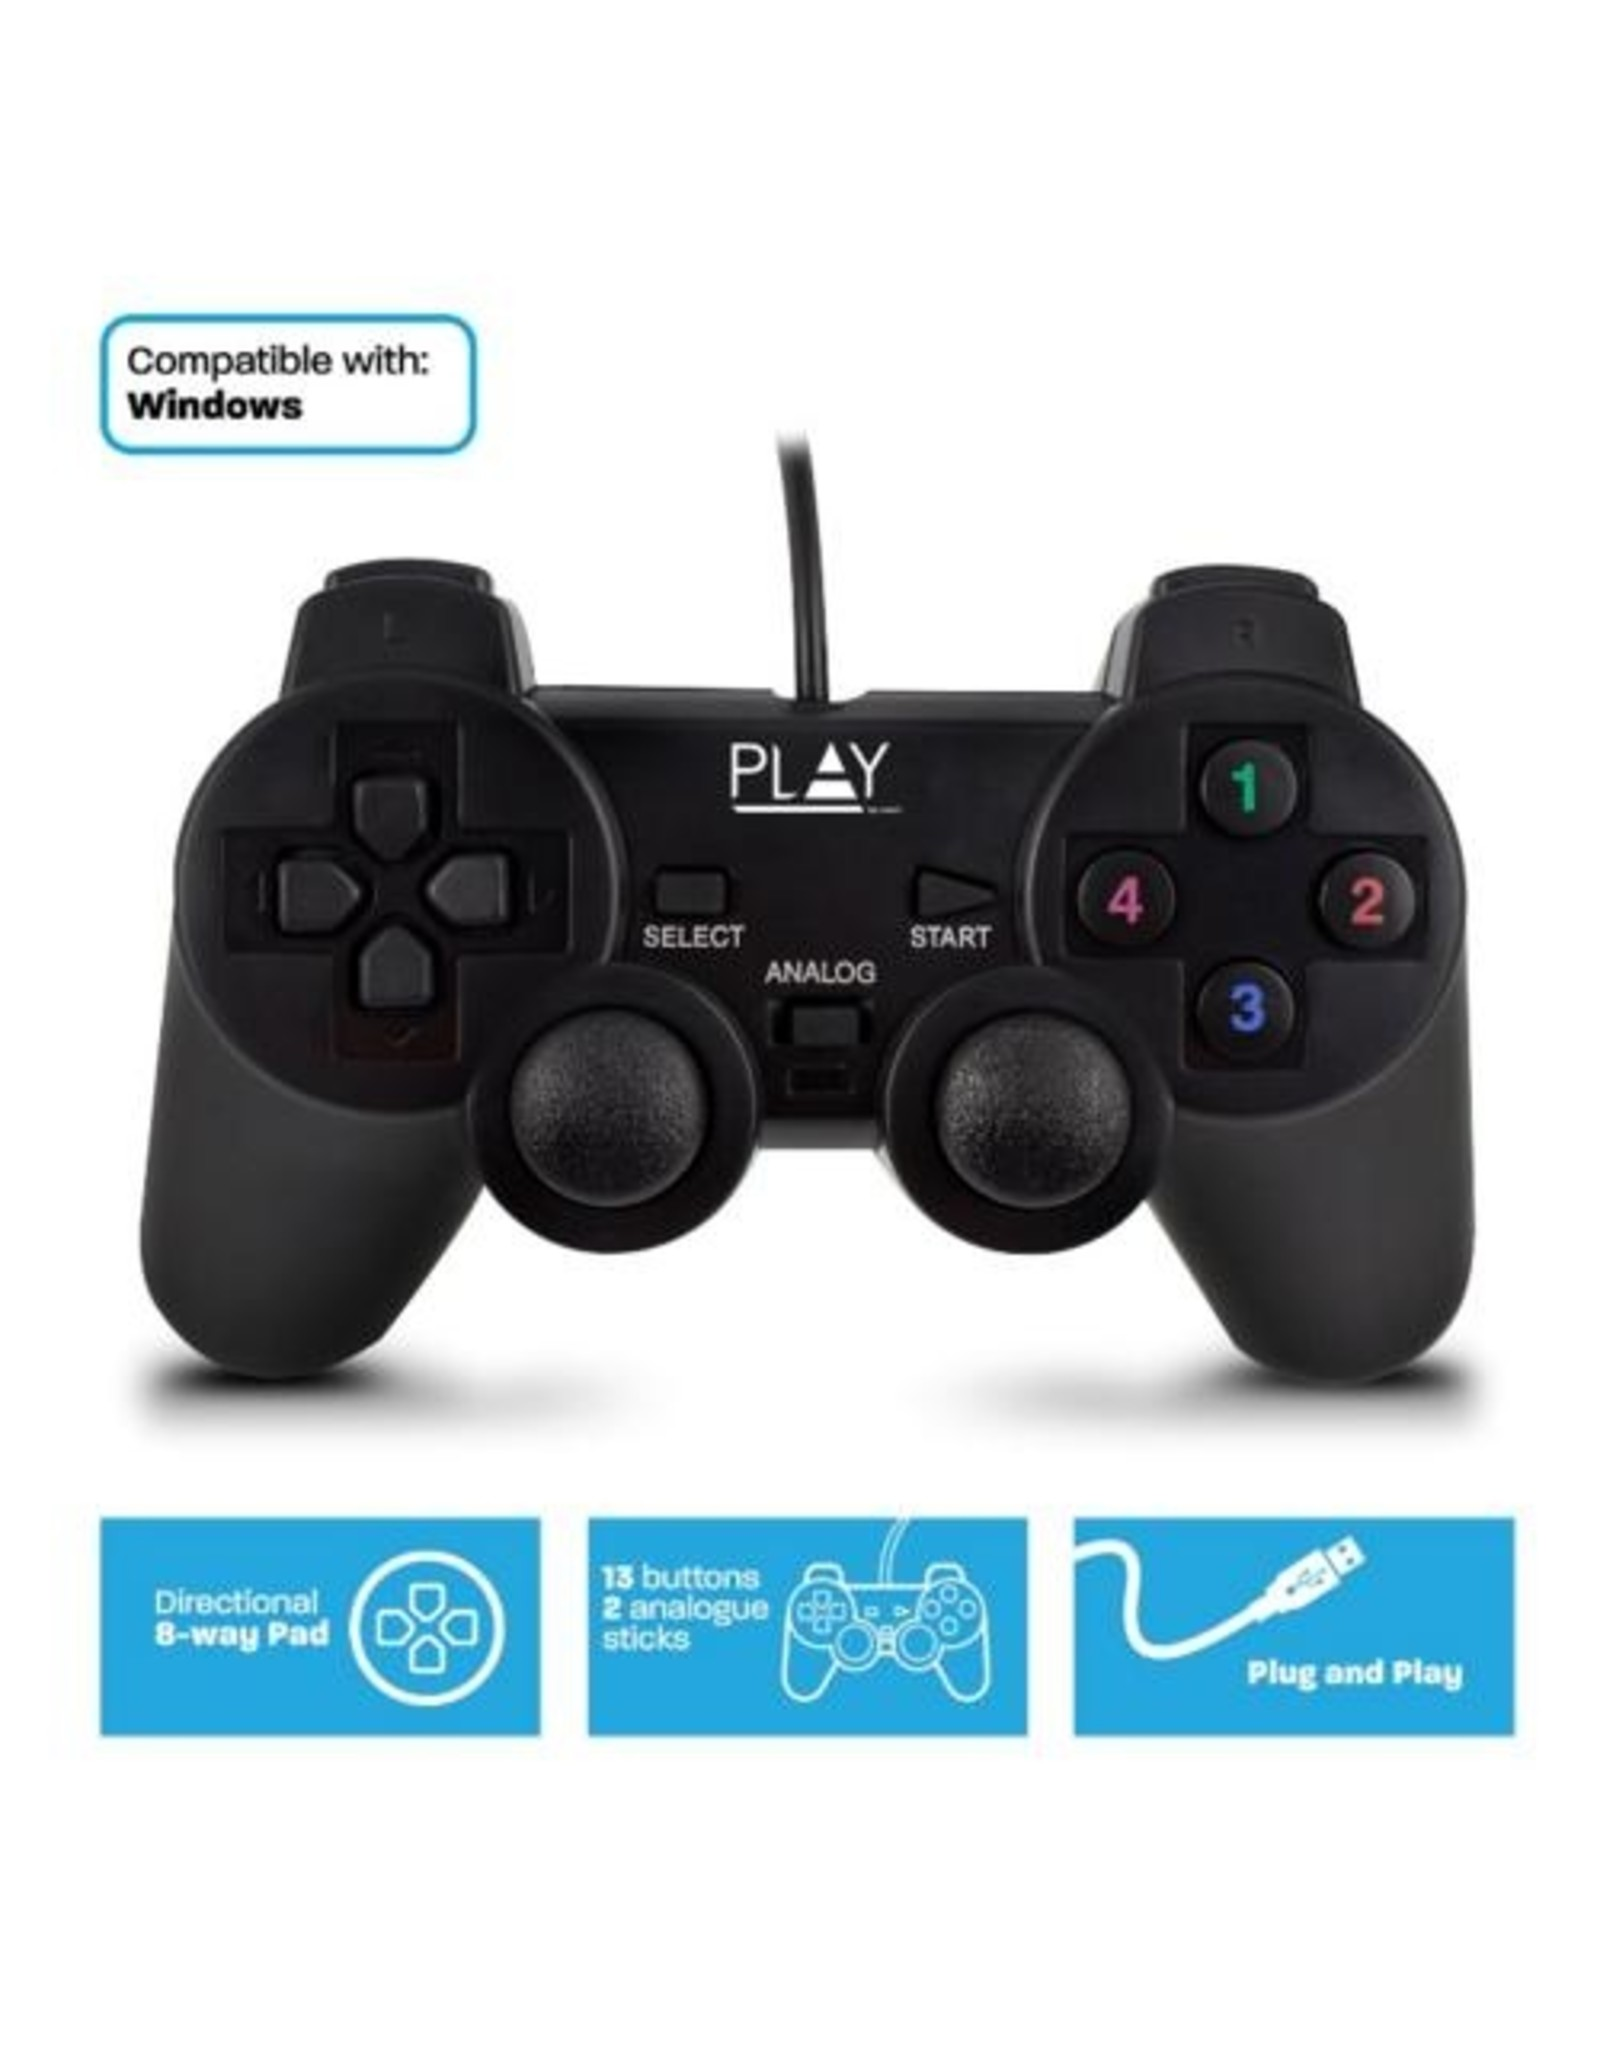 Ewent Play Gaming Wired USB Gamepad for PC